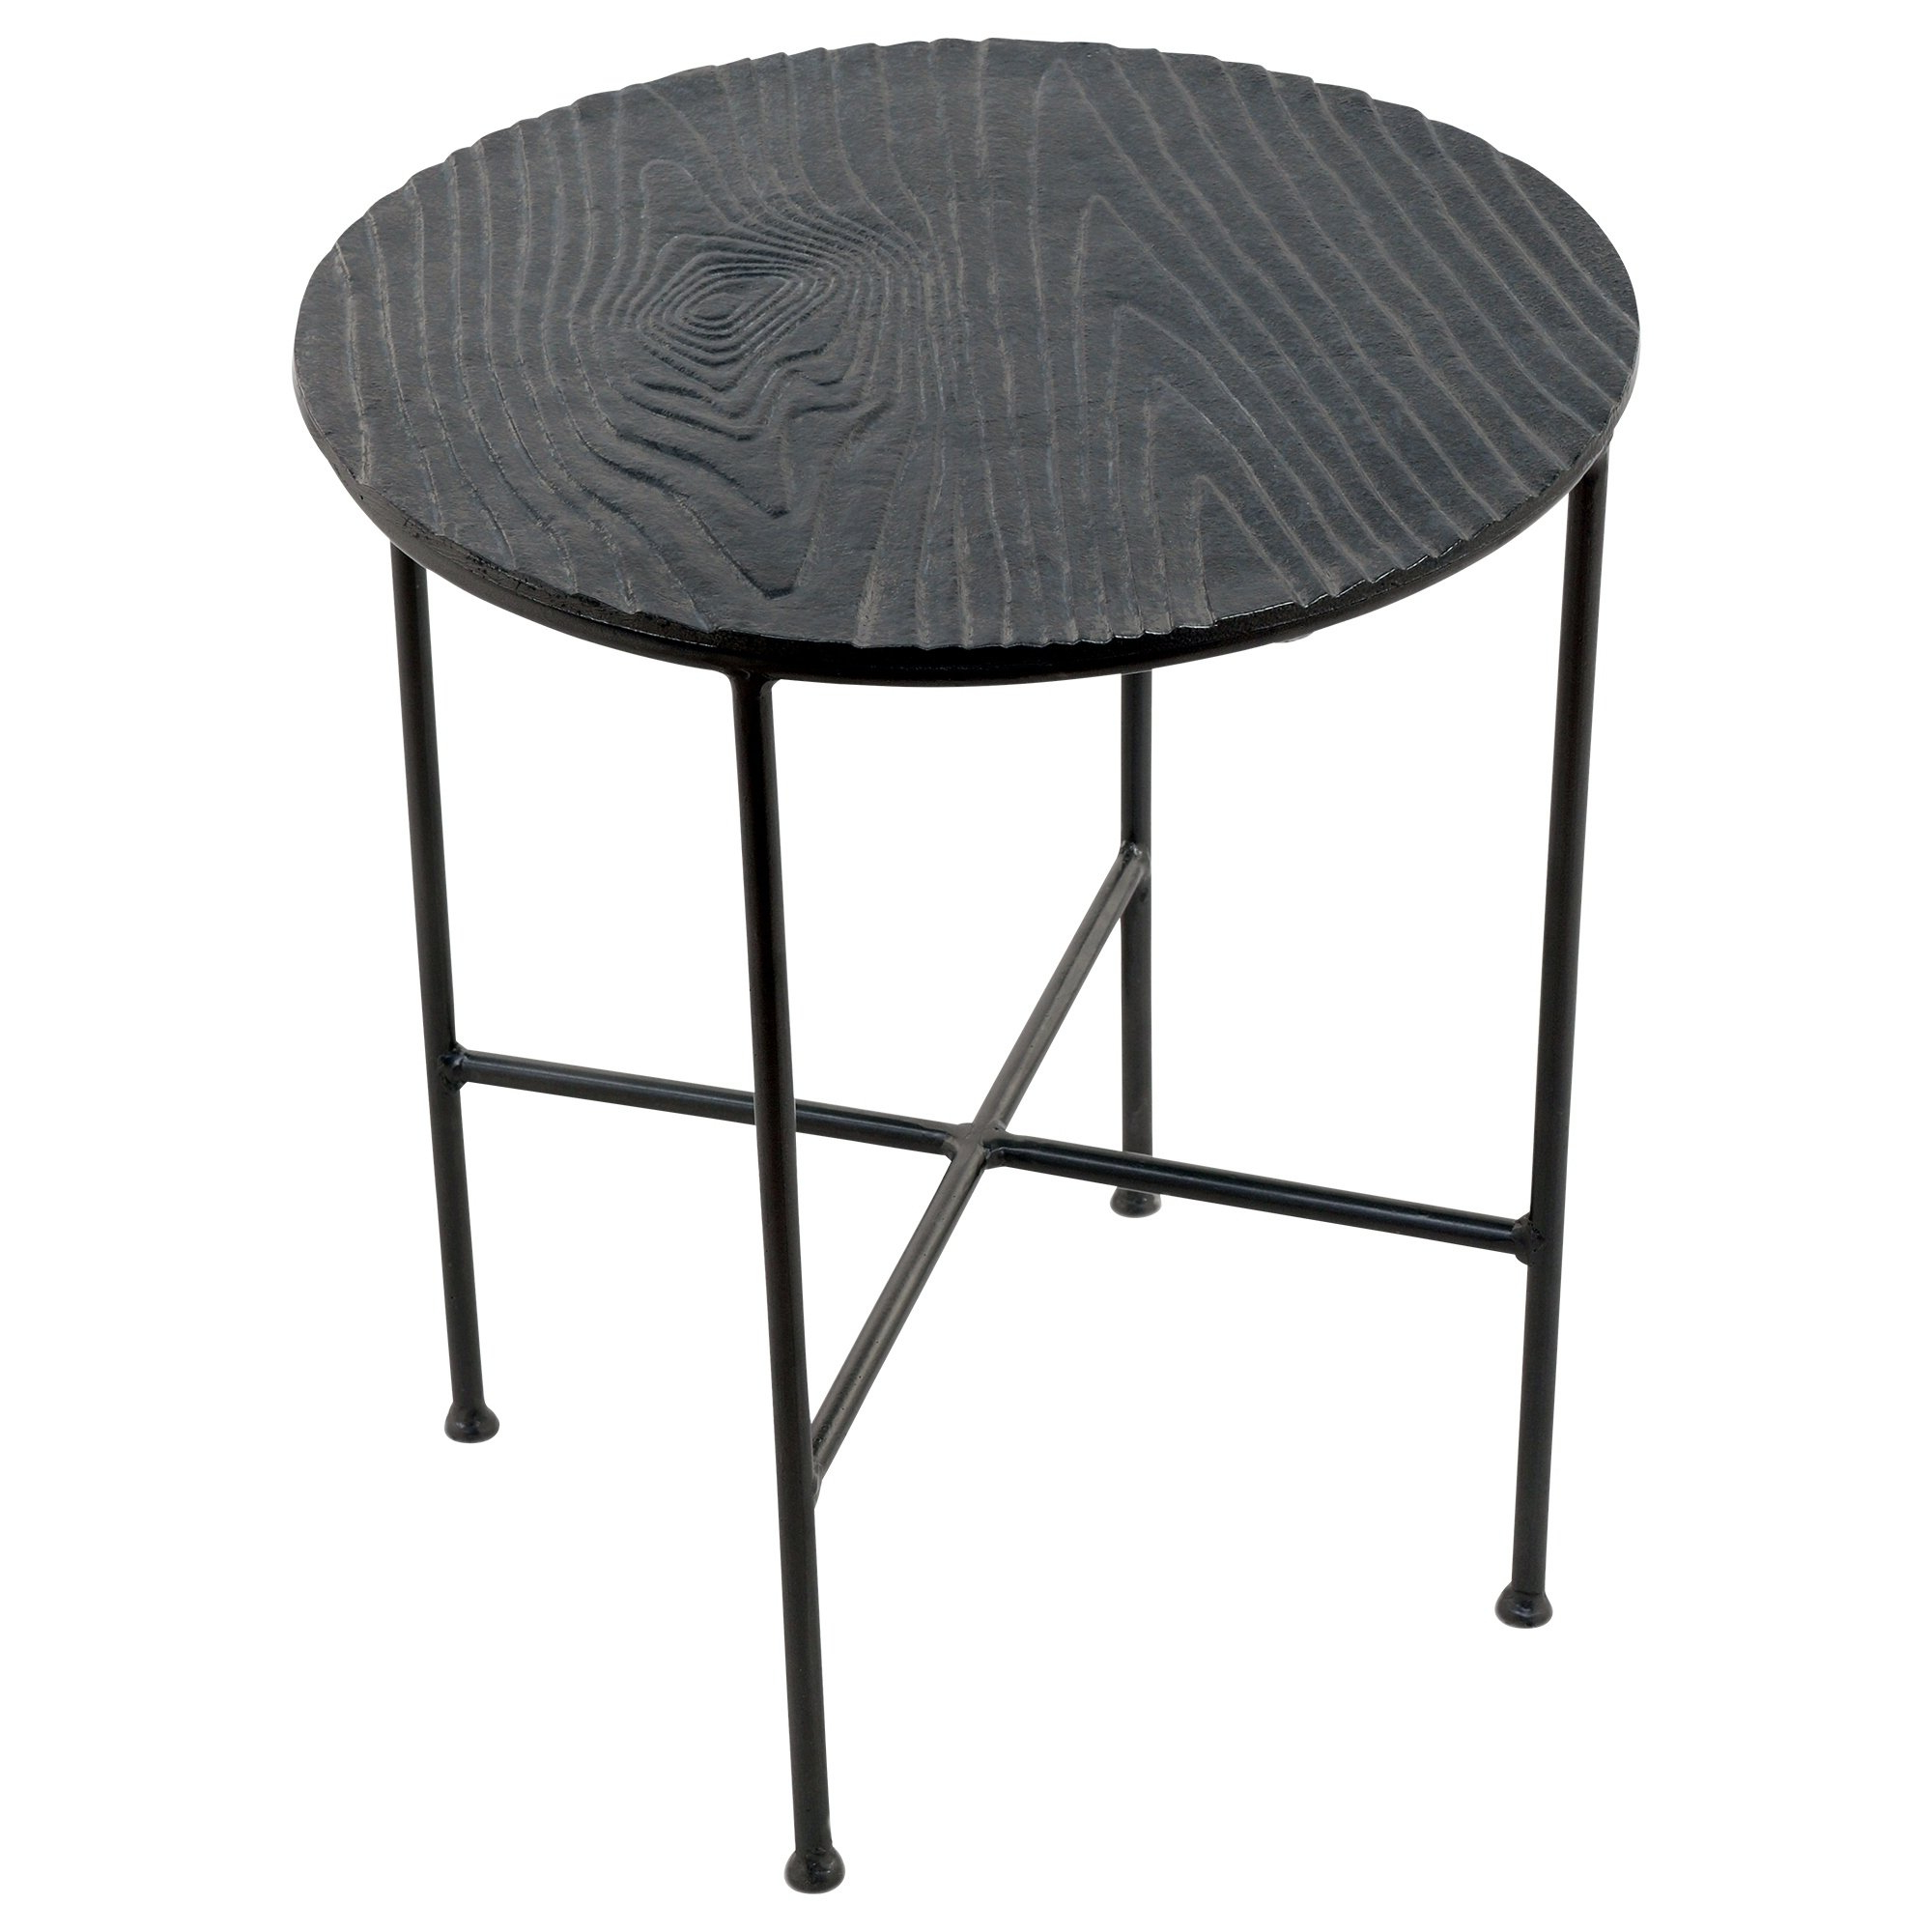 Most Recent Bale Rustic Grey Round Cocktail Tables With Storage Regarding Shop Renwil Bale Grey Aluminum Round Accent Table – Free Shipping (Gallery 13 of 20)